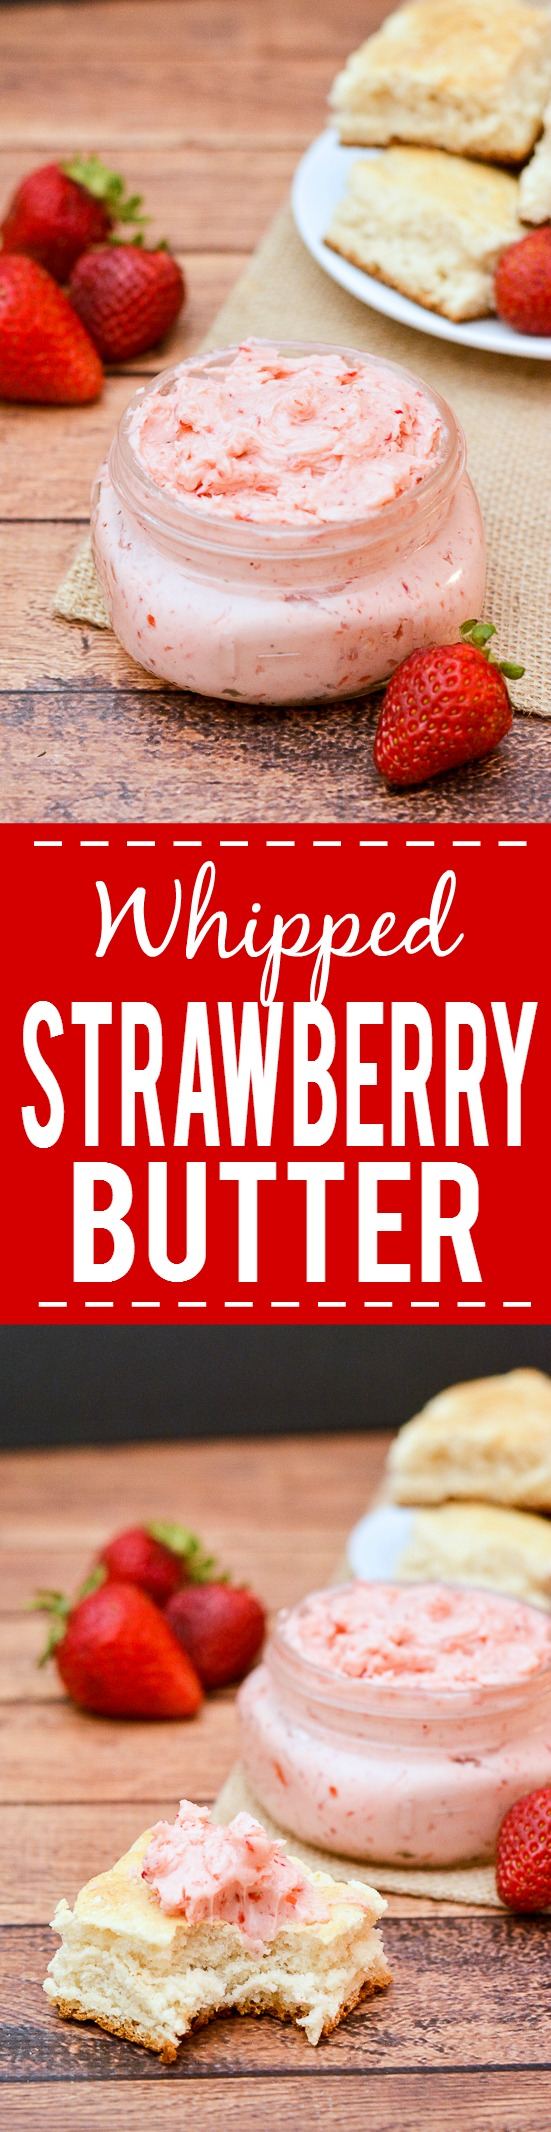 Whipped Strawberry Butter recipe -Sweet and freshWhipped Strawberry Butter goes perfectly on your favorite roll, biscuit, or scone for a refreshing and yummy treat. Make it in just 10 minutes with 3 ingredients! Yummy and easy DIY gift idea too! Just put it in a mason jar and tie a bow with twine.